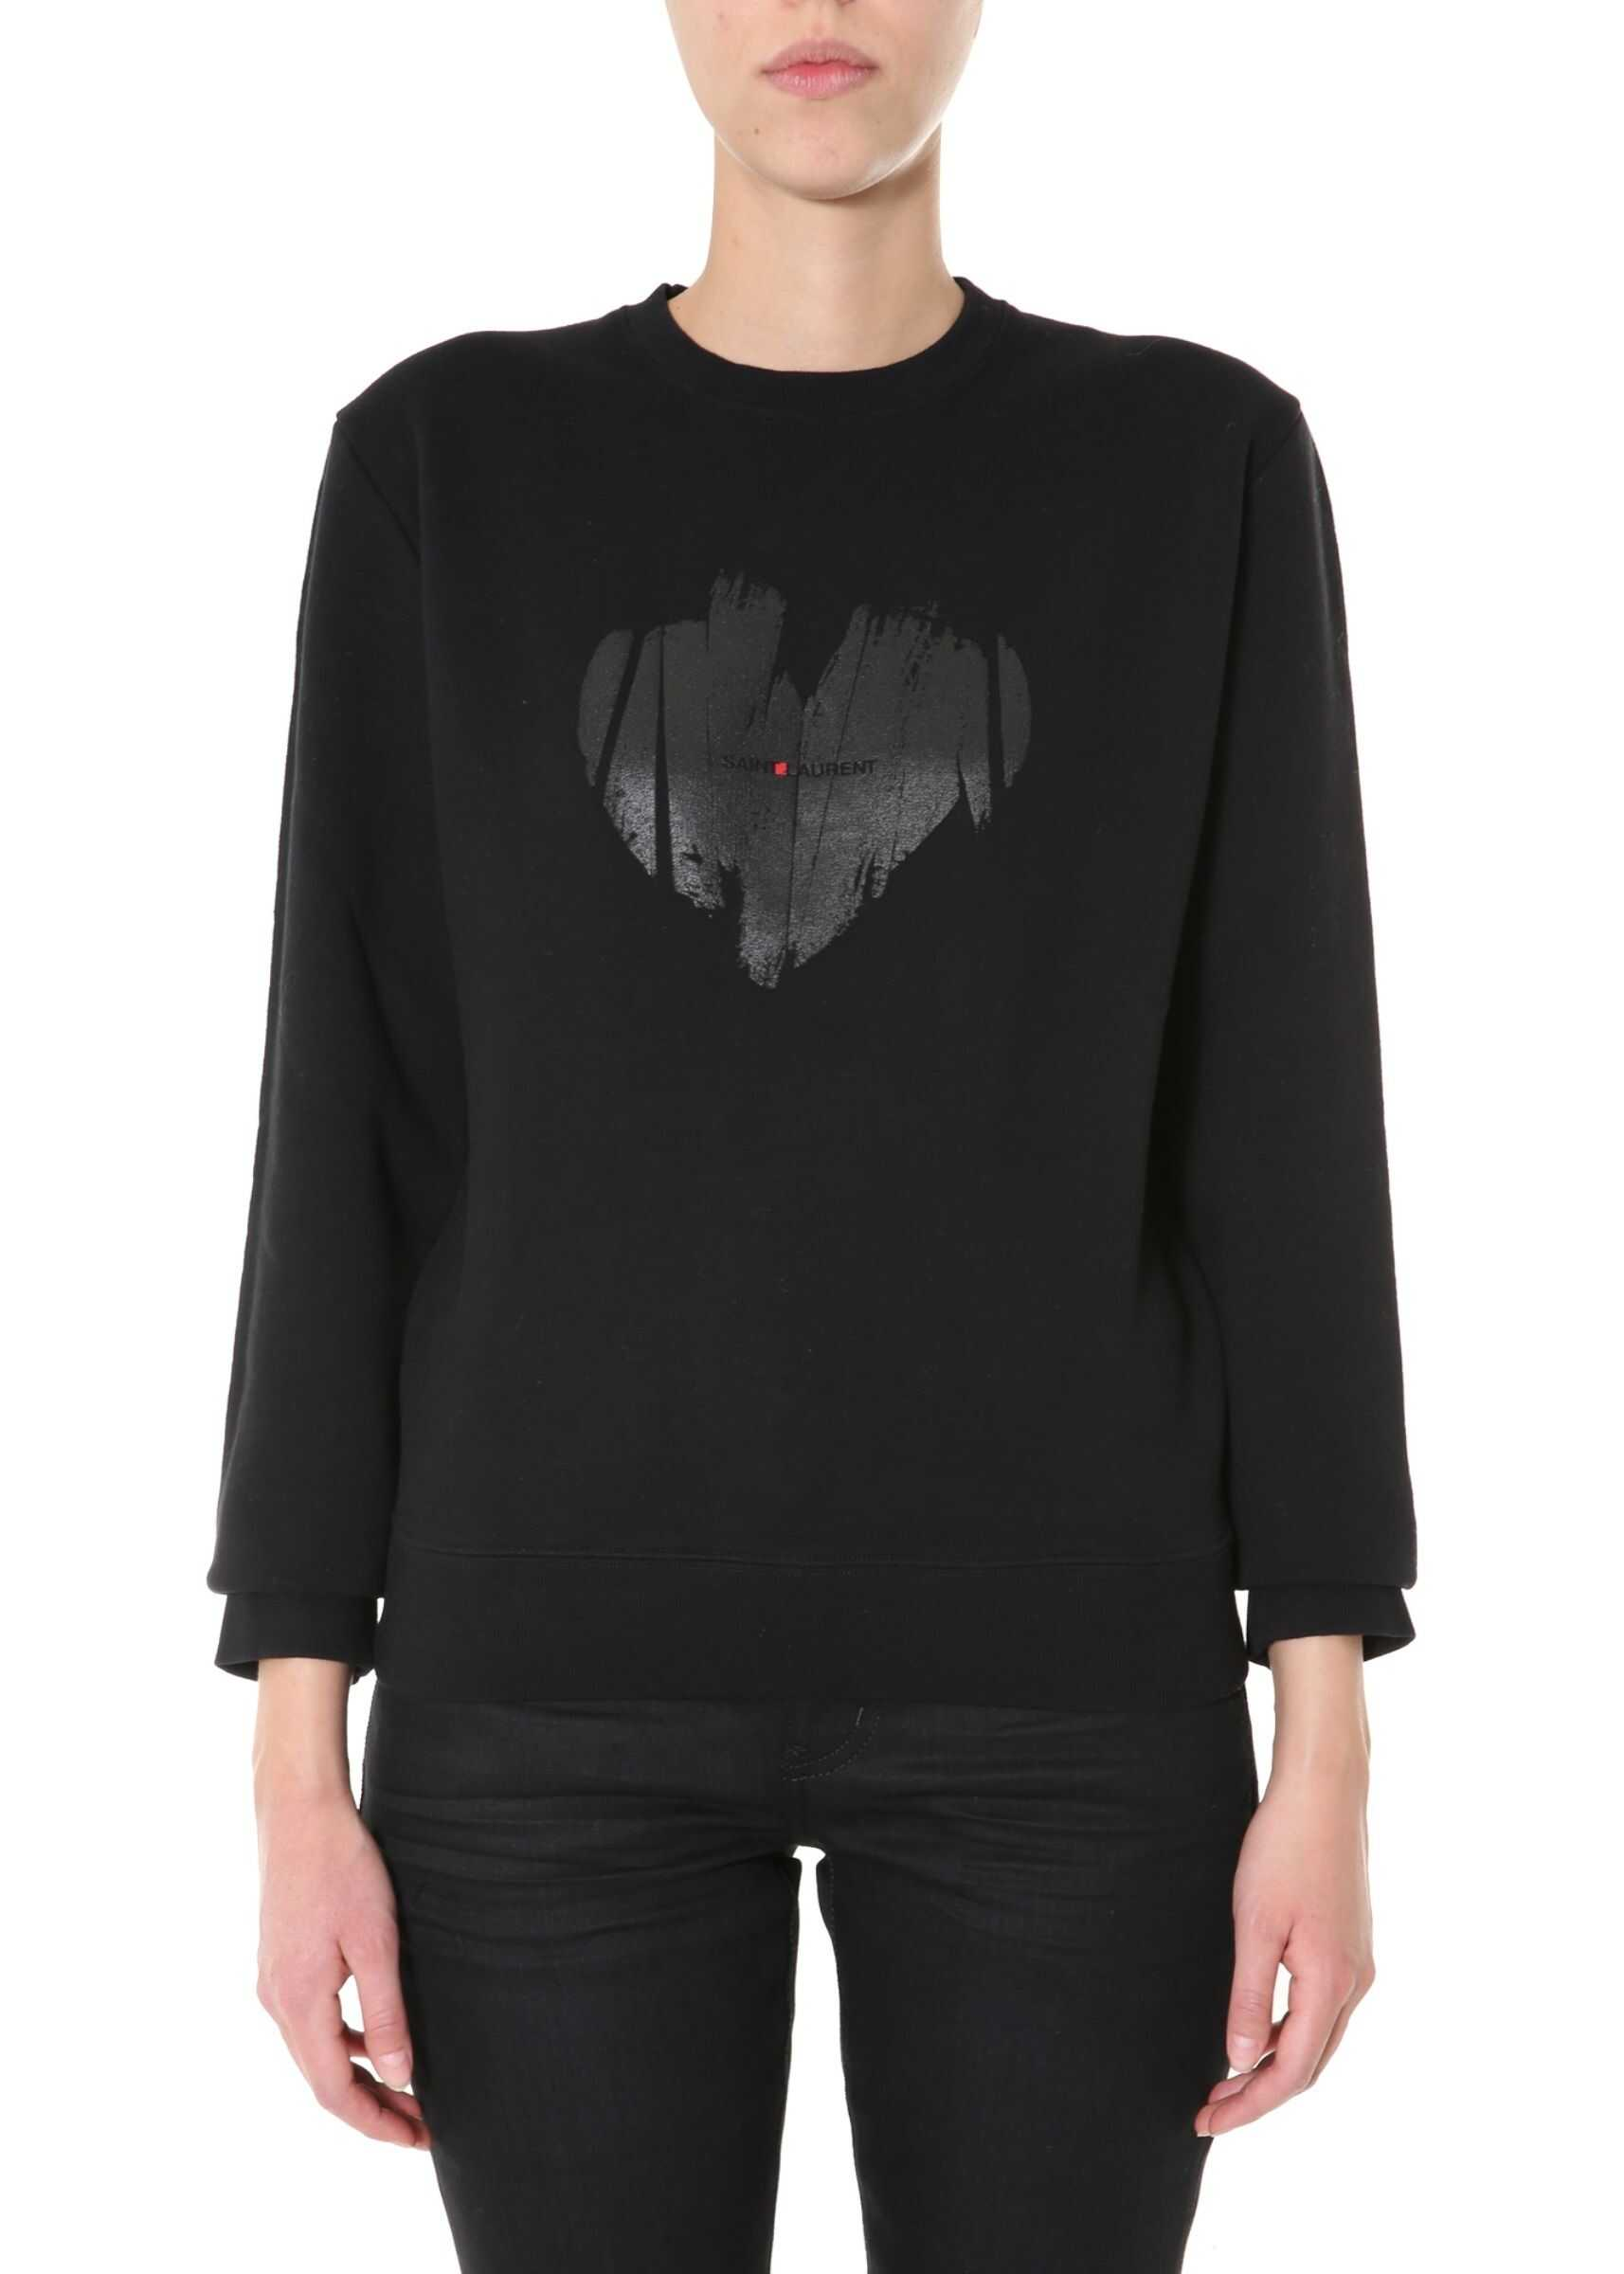 Saint Laurent Printed Sweatshirt BLACK